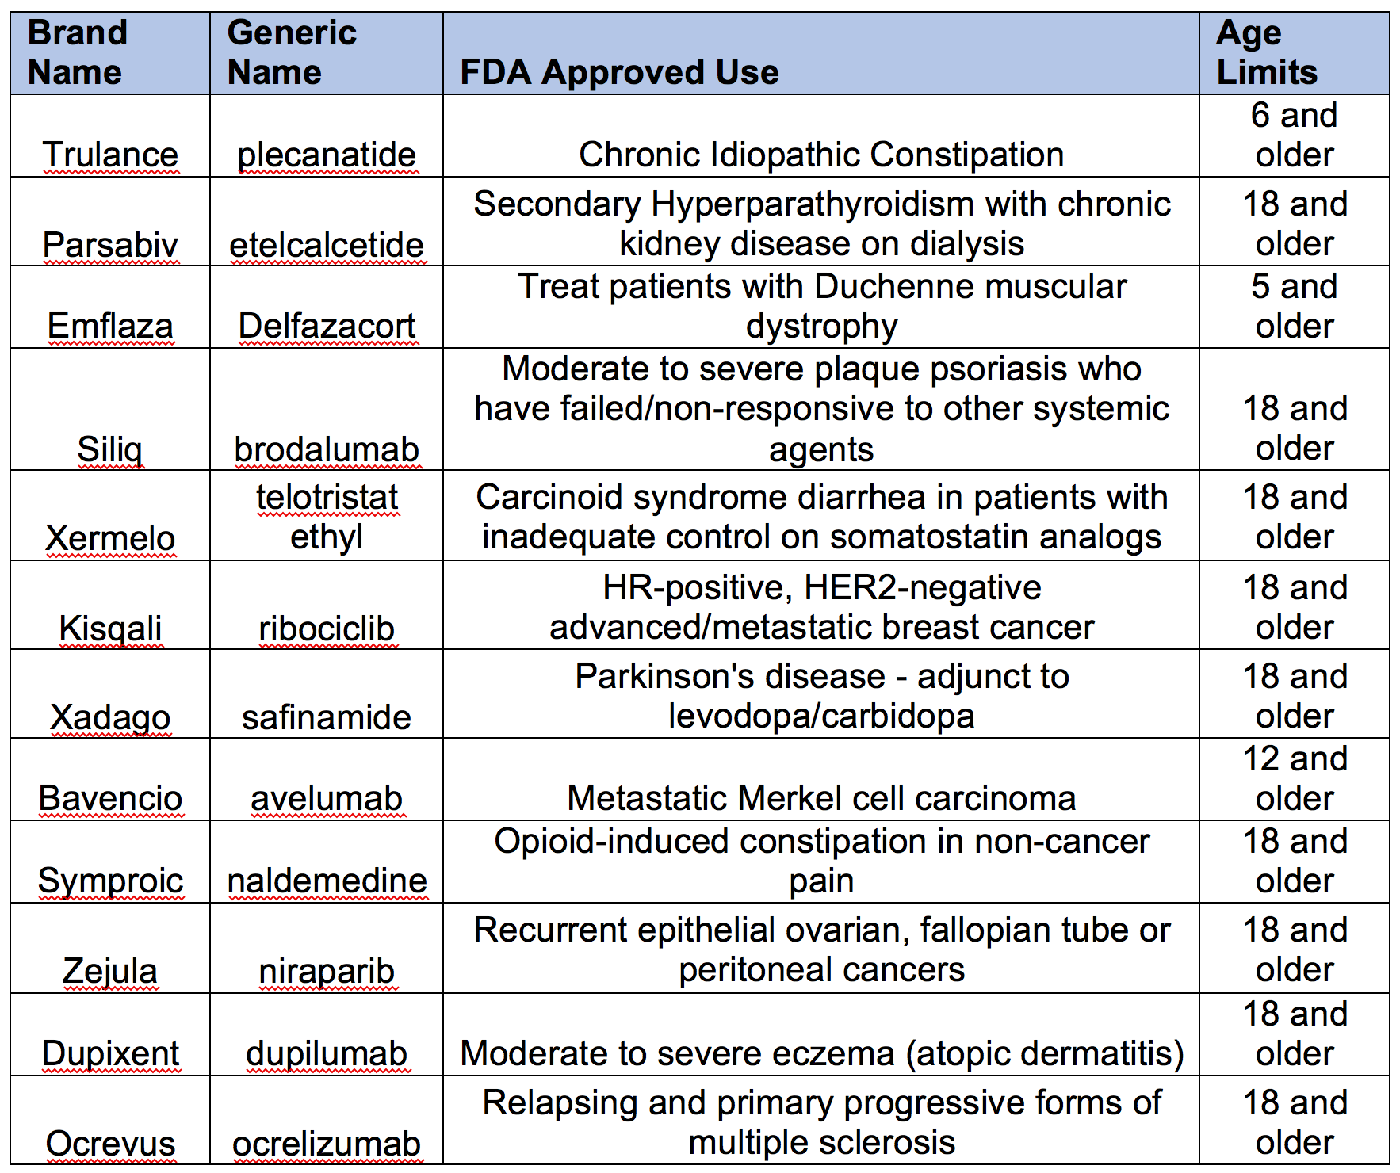 New medications approved by the FDA in 2017